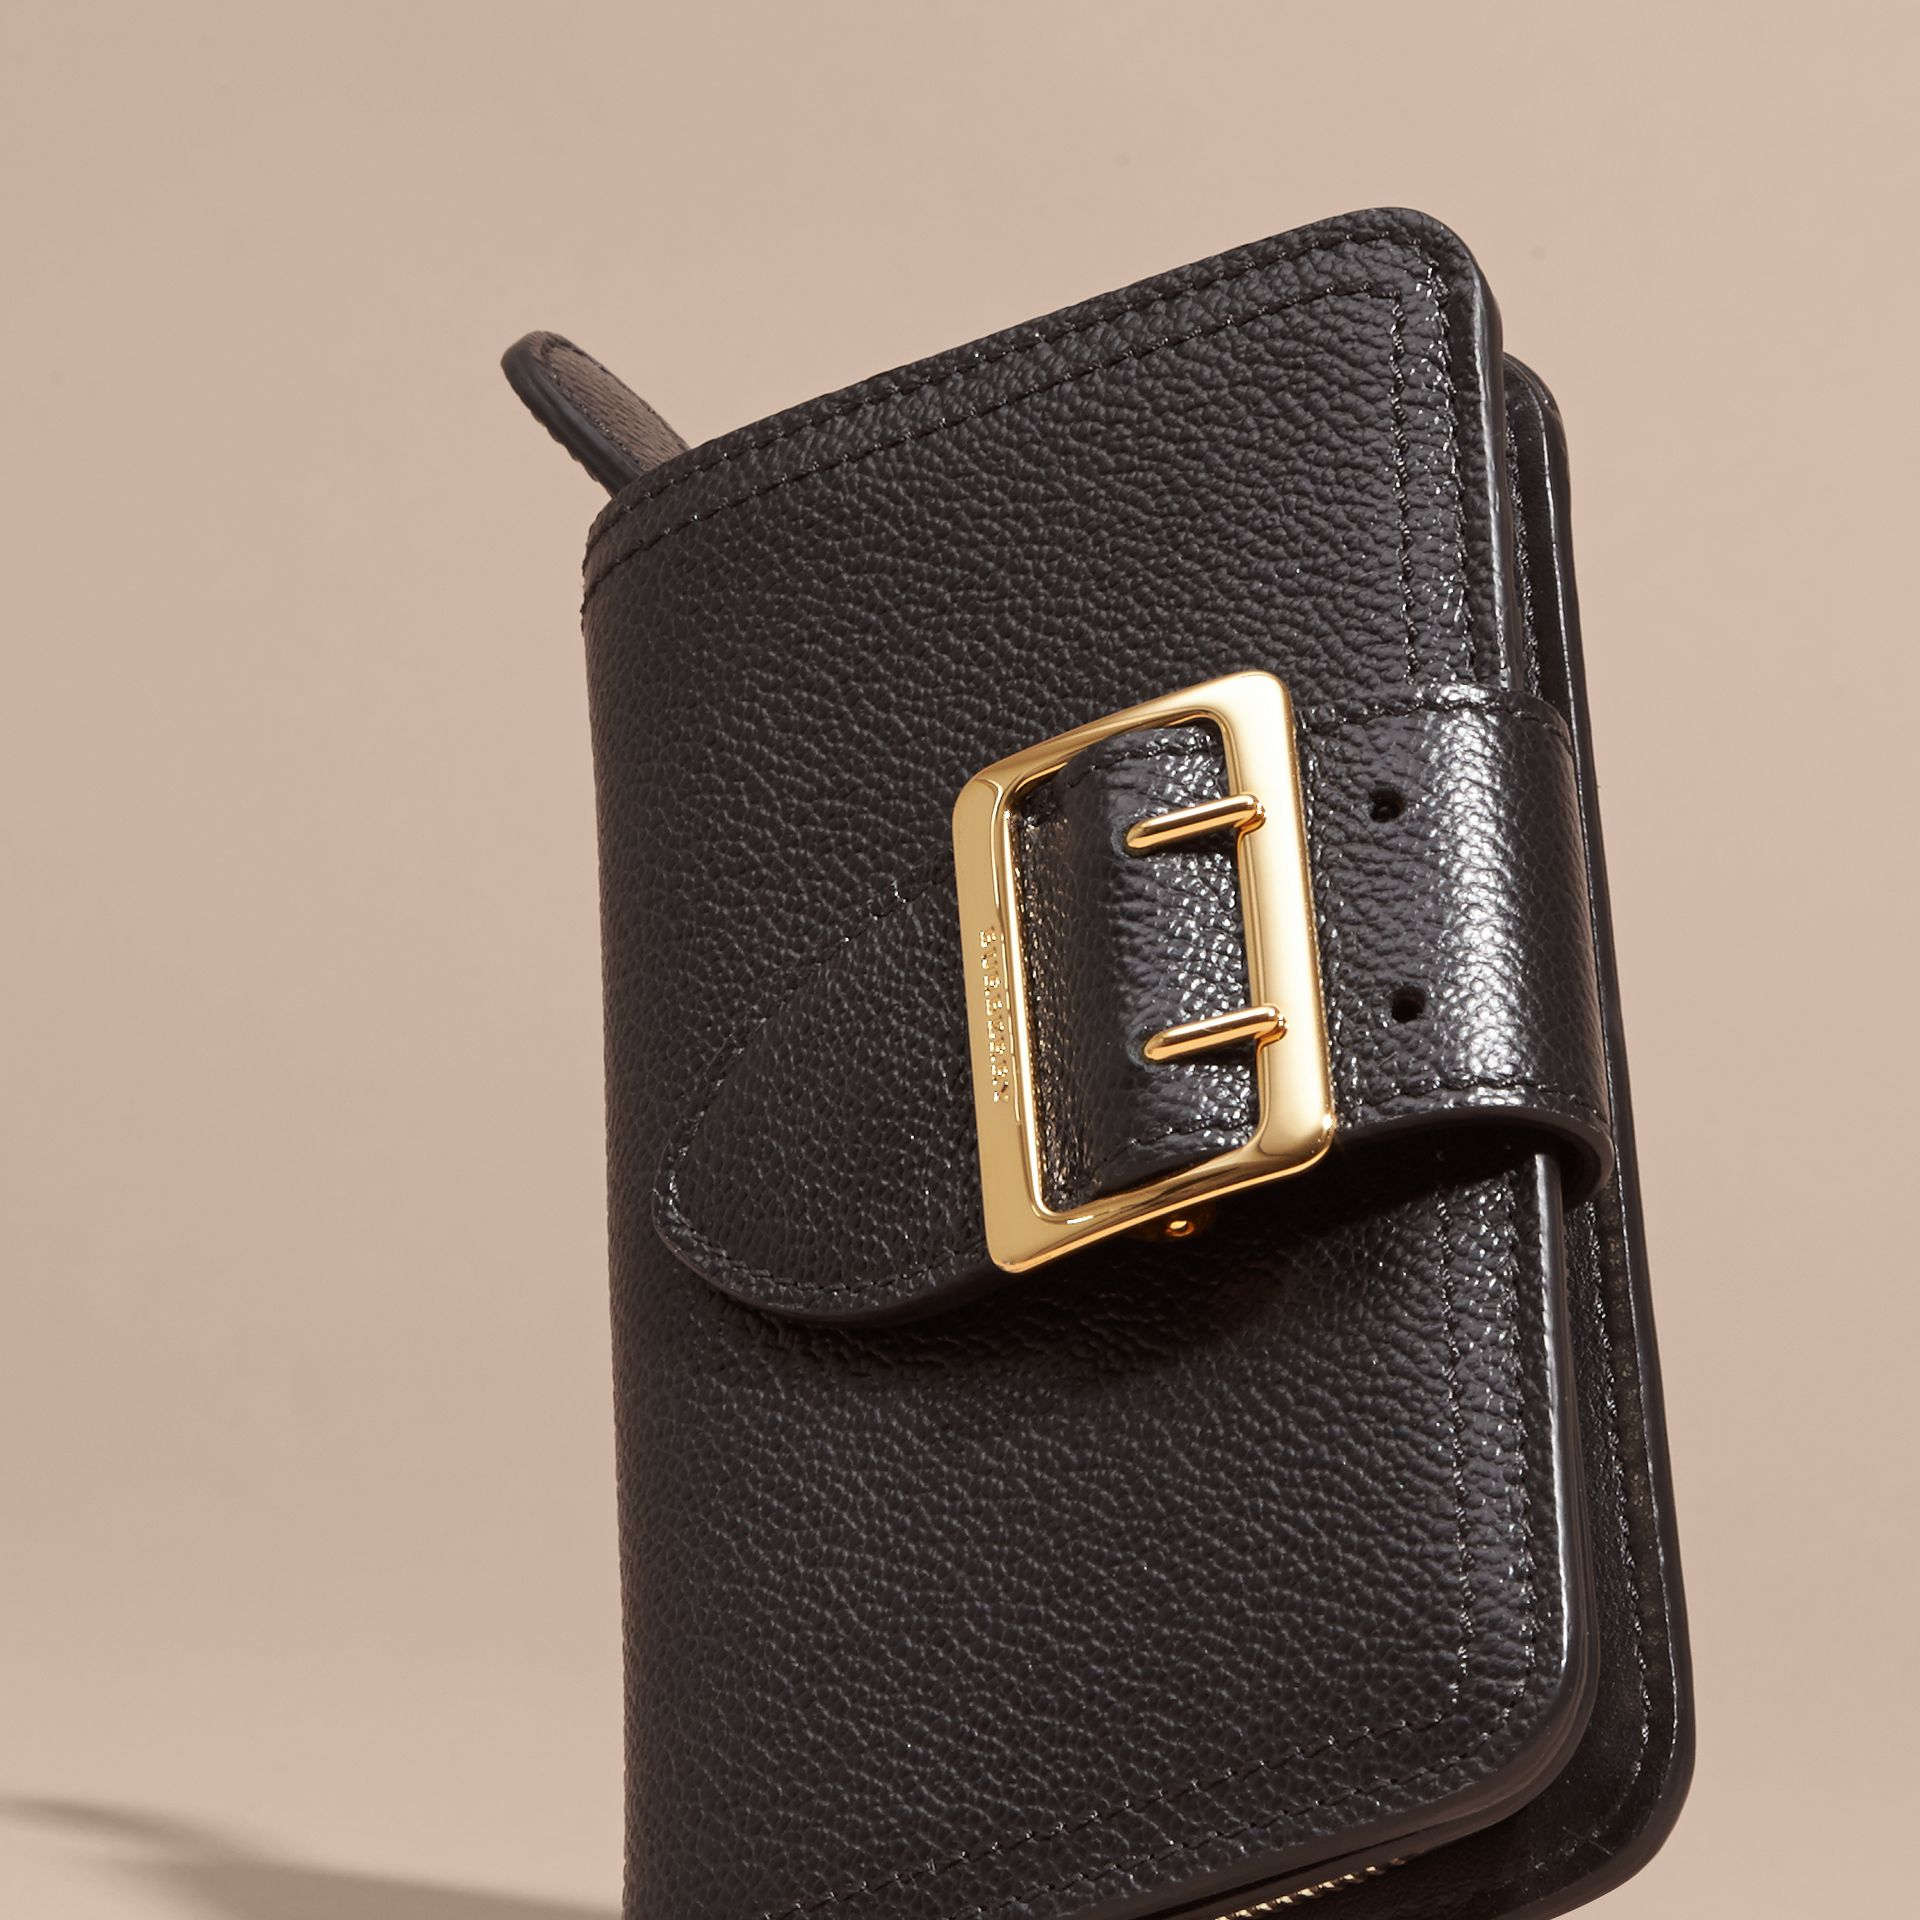 Buckle Detail Grainy Leather Wallet in Black - gallery image 3